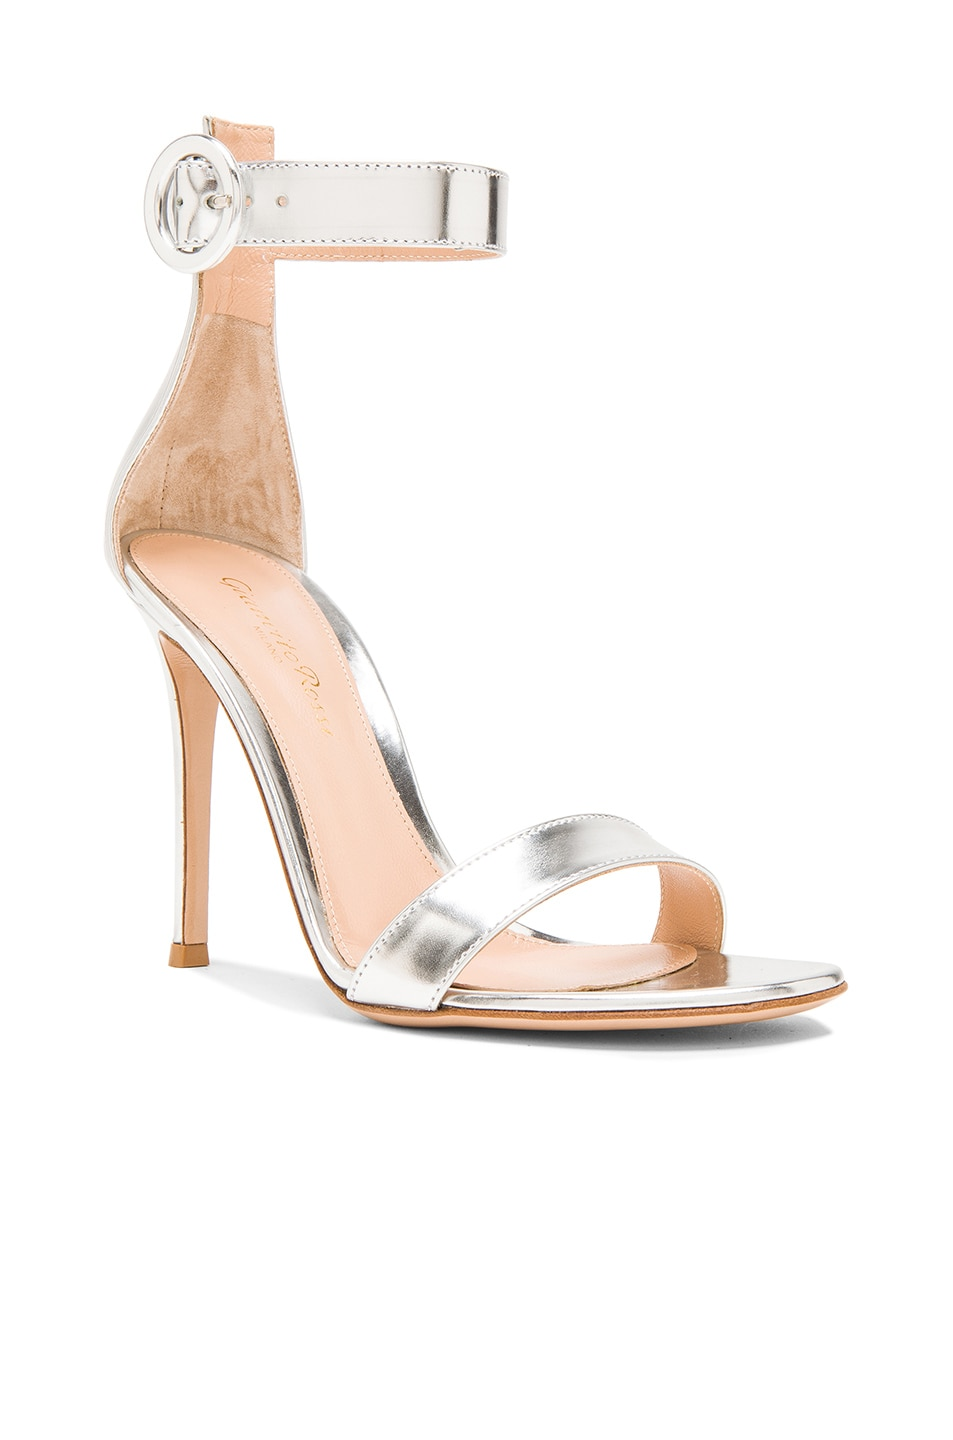 Image 2 of Gianvito Rossi Metallic Leather Portofino Heels in Silver